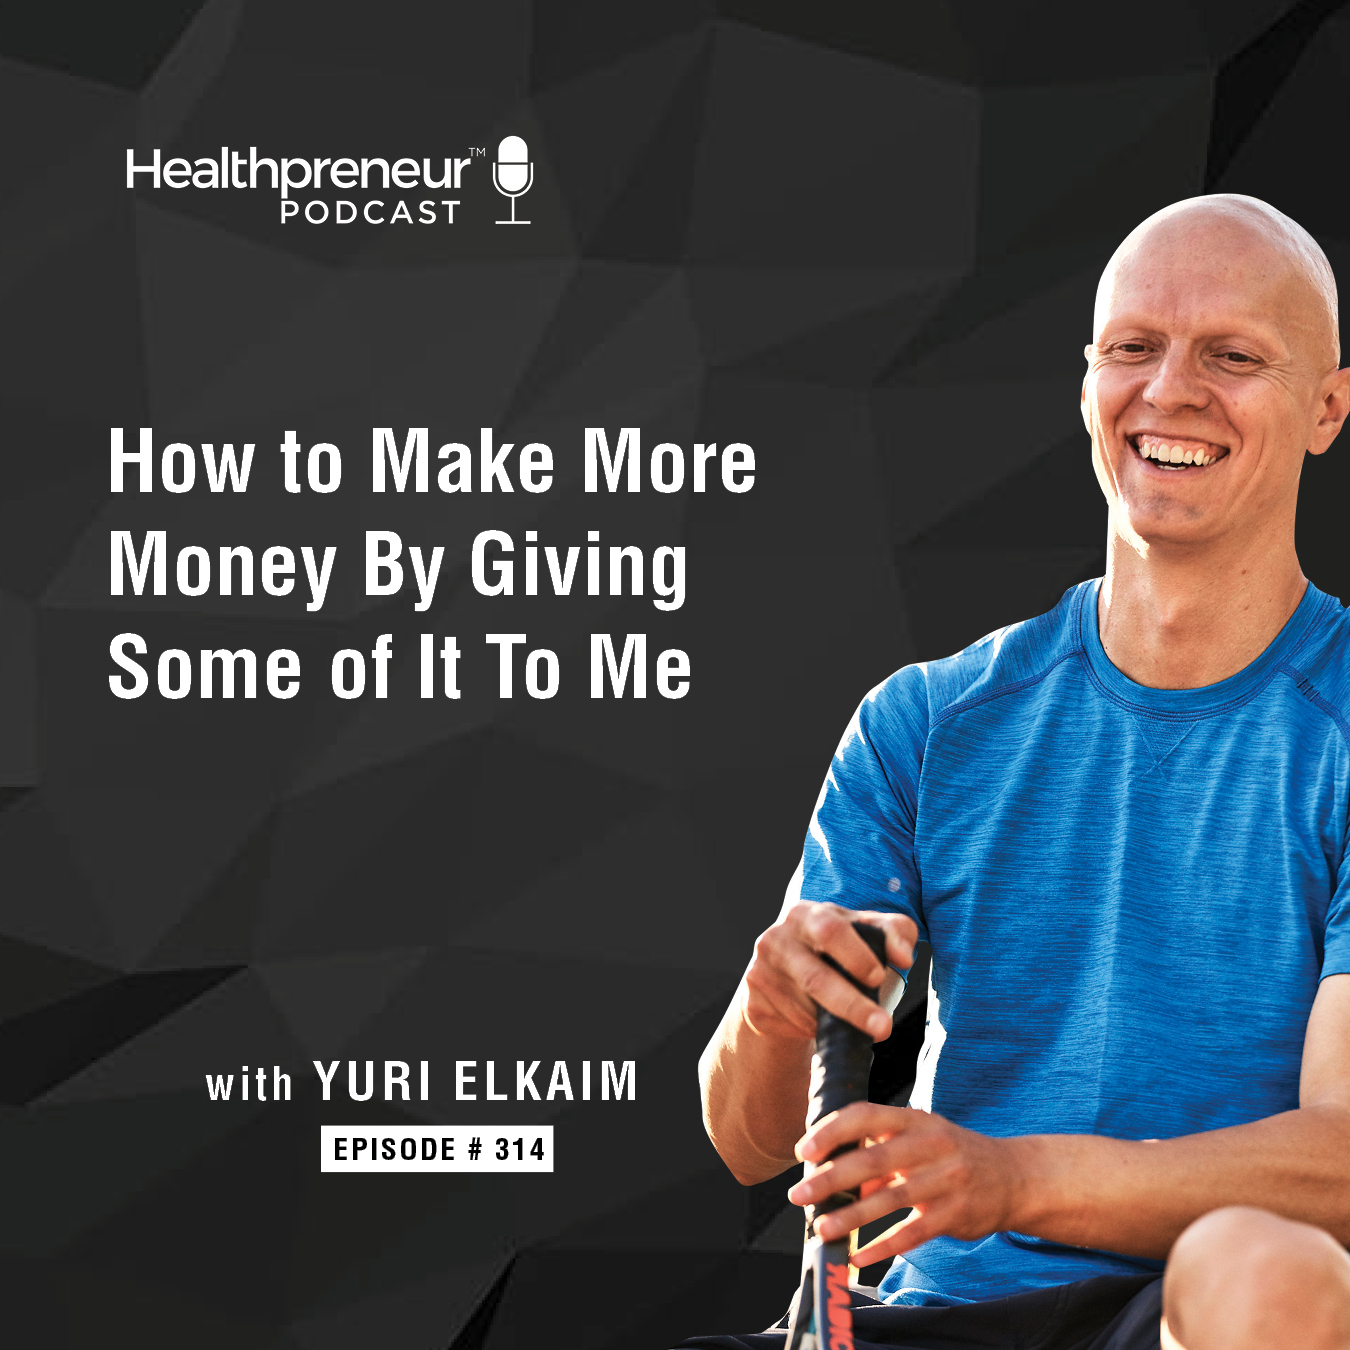 314 - How to Make More Money By Giving Some of It To Me show art